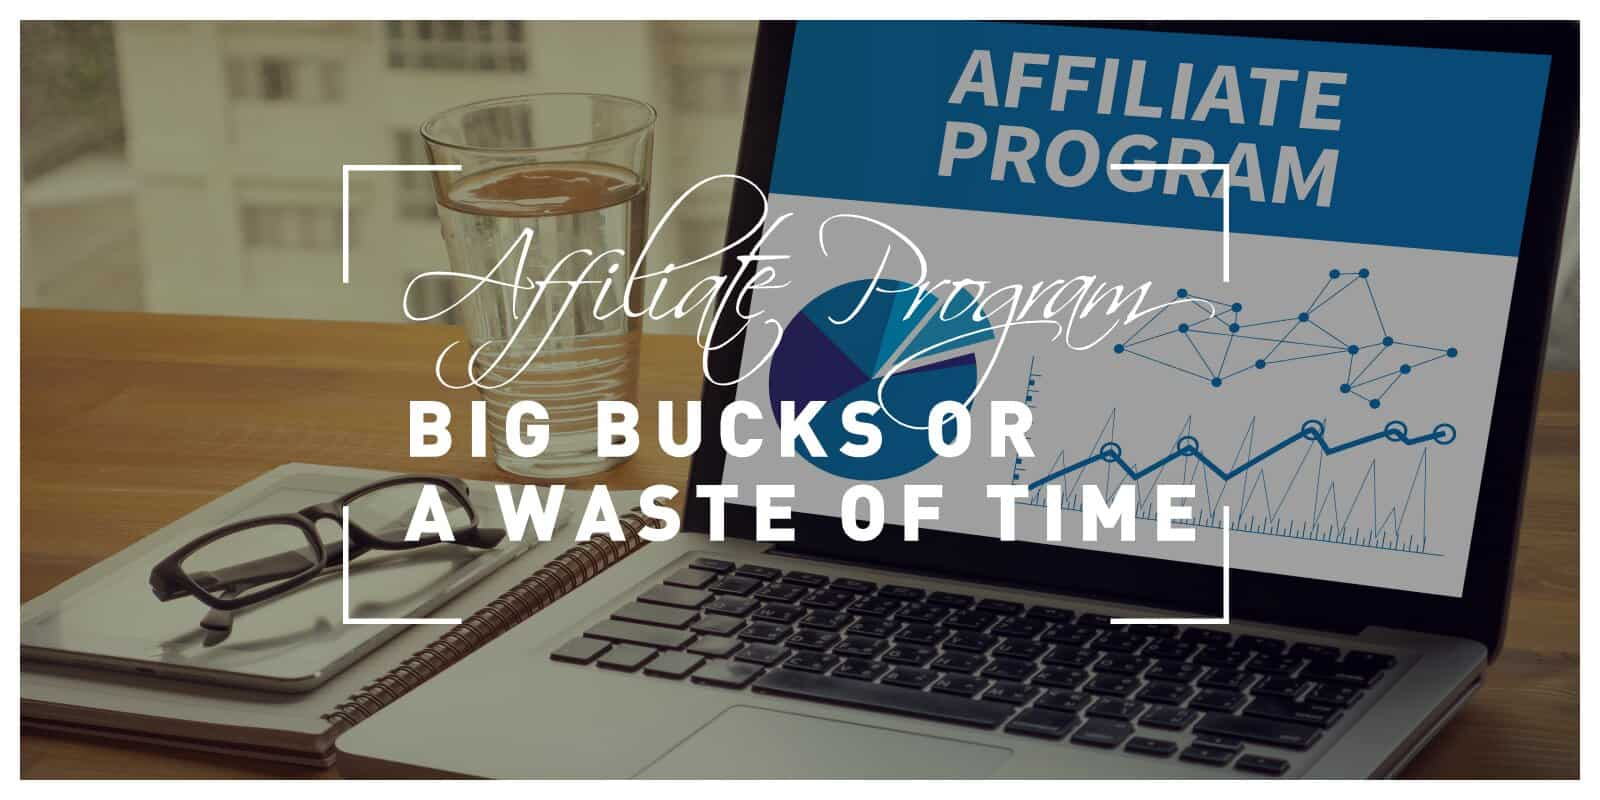 An Affiliate Program - Big Bucks or a Waste of Time